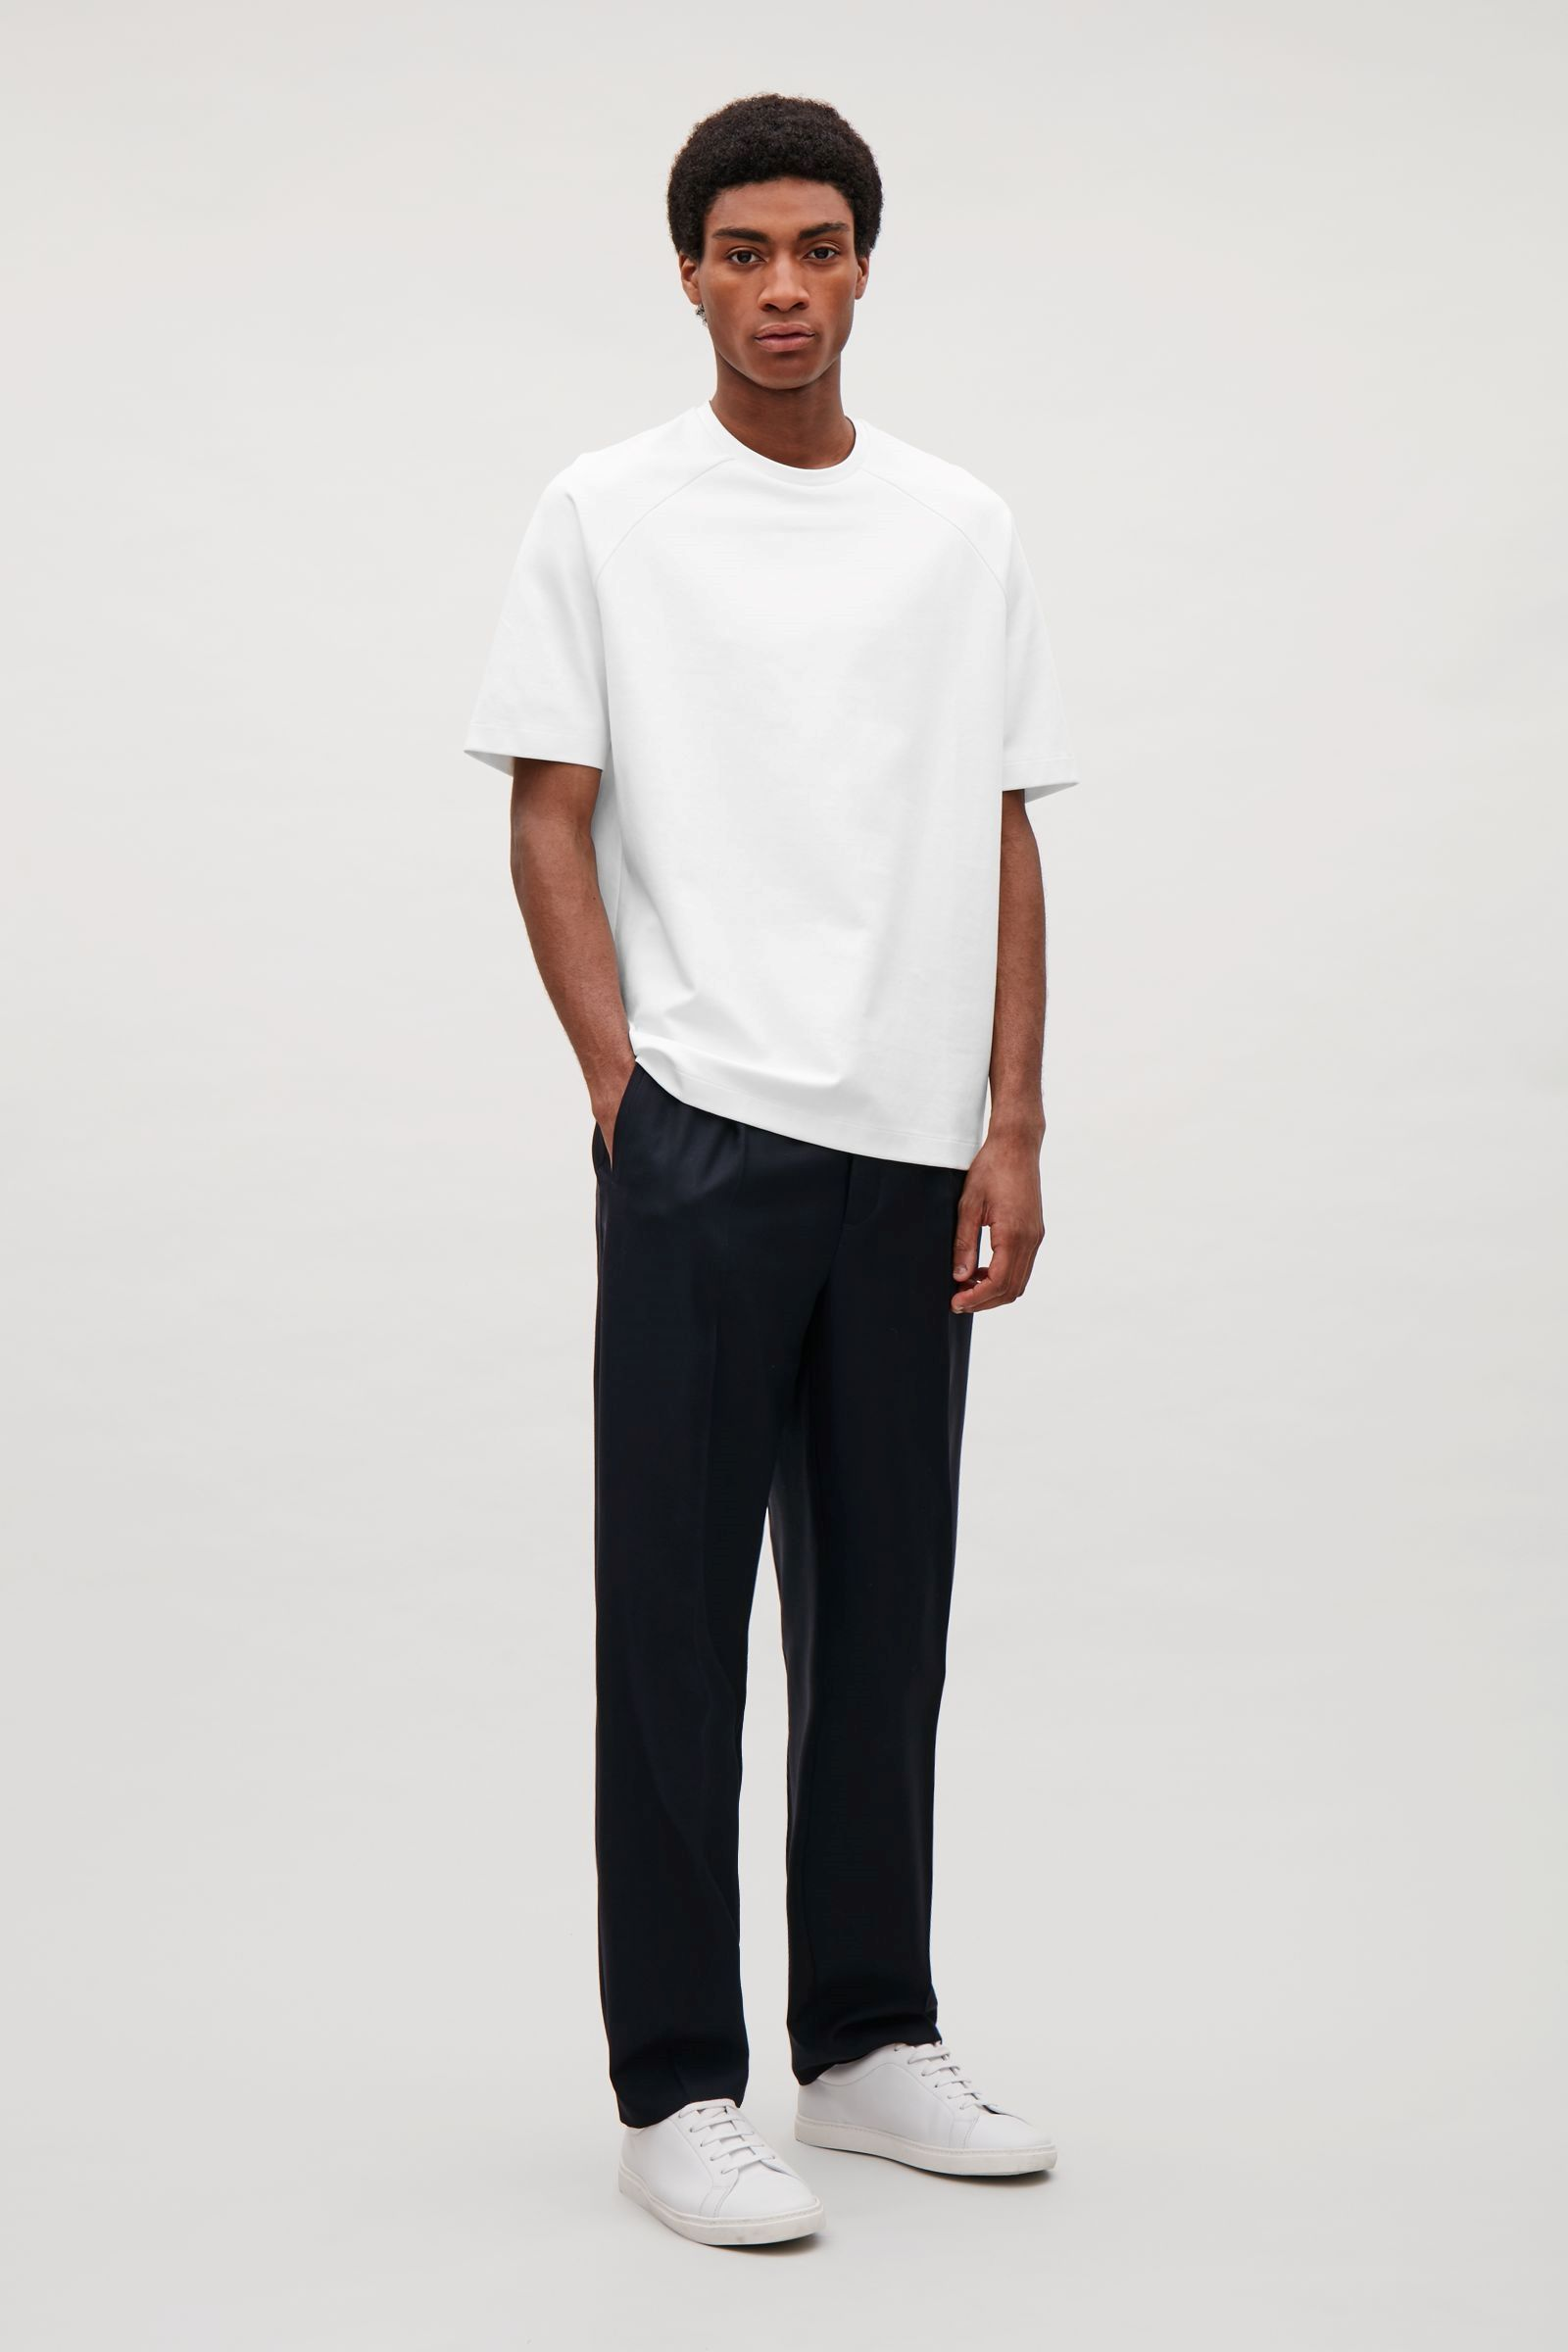 COS image 1 of Bonded jersey t shirt in Pearl White | Latest